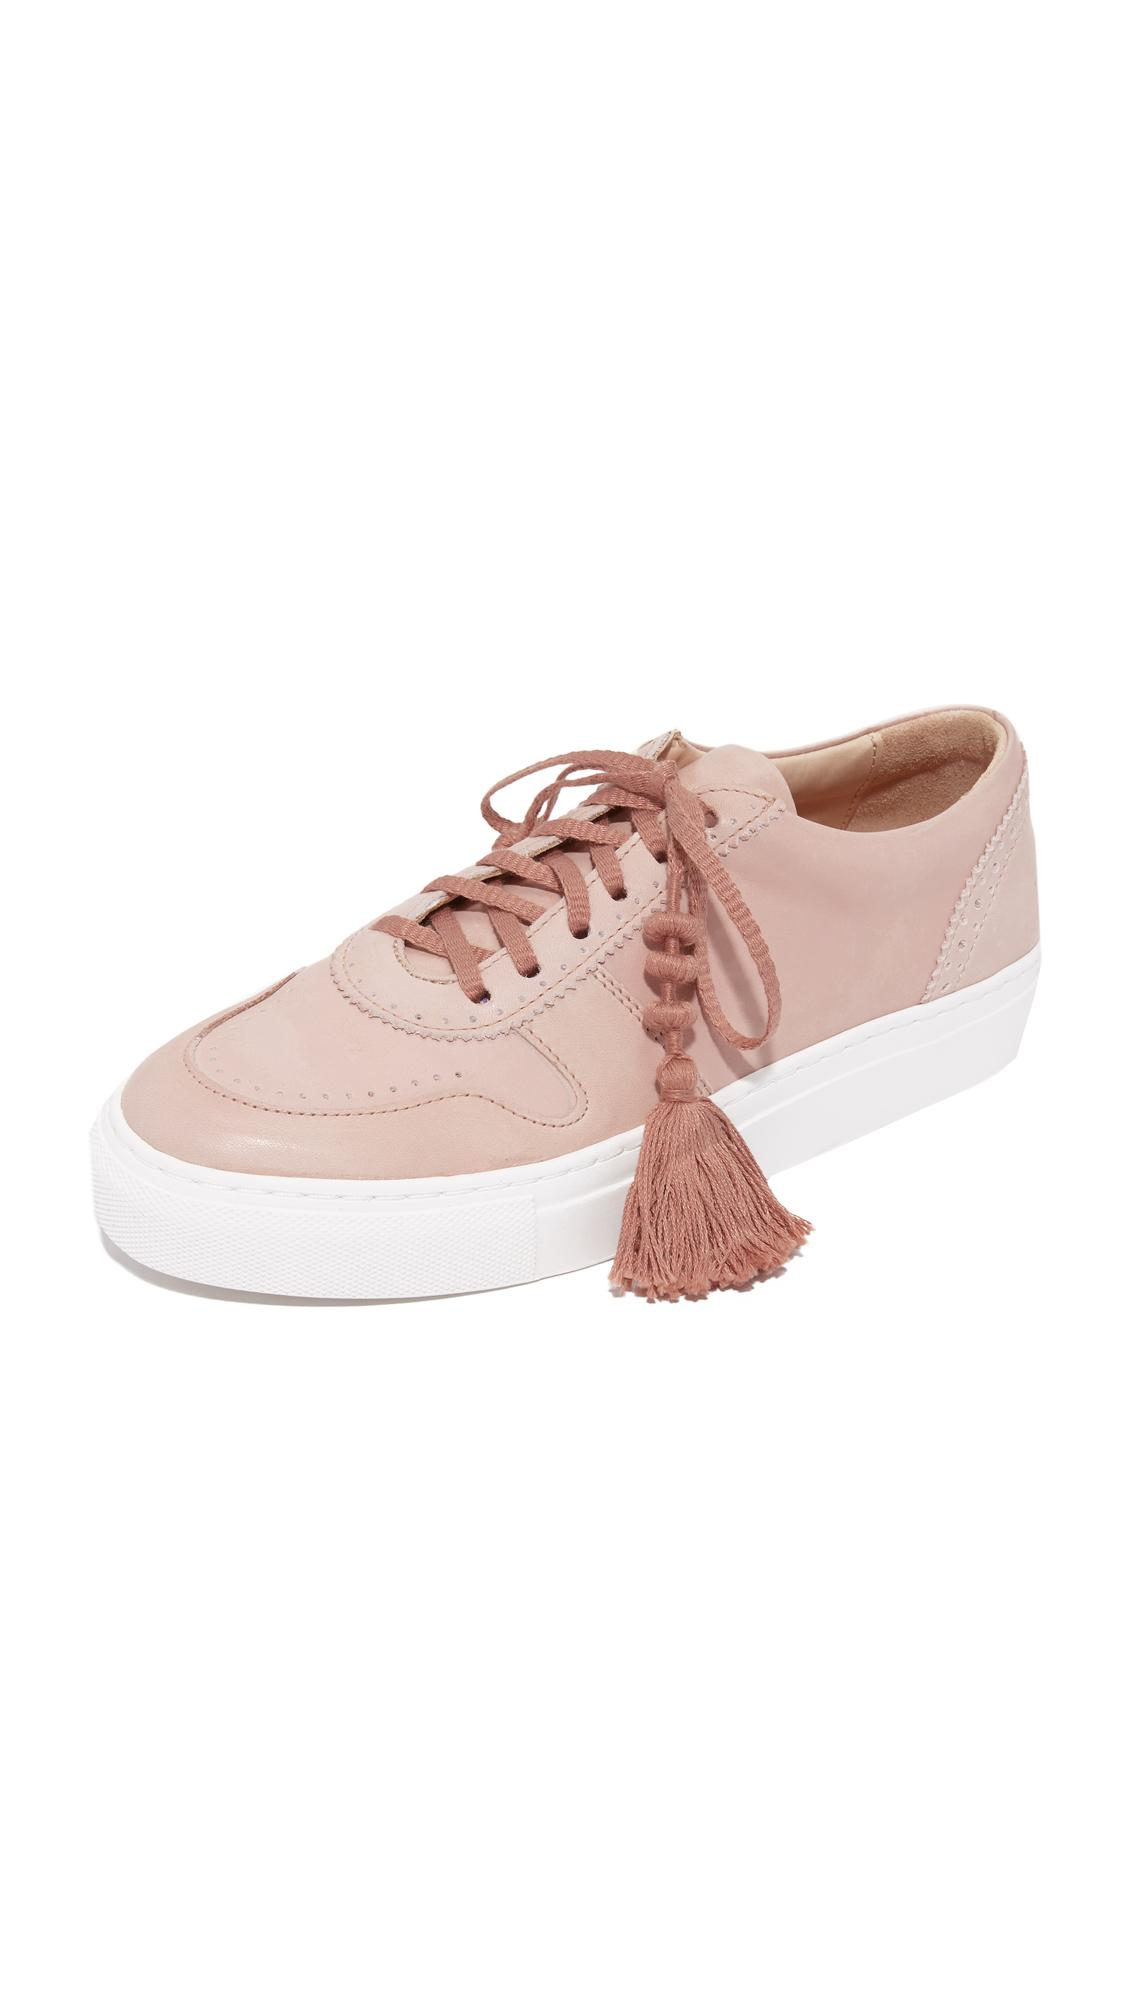 outlet great deals Ulla Johnson Kai Brogue Low-Top Sneakers reliable for sale outlet order online SRaaijq